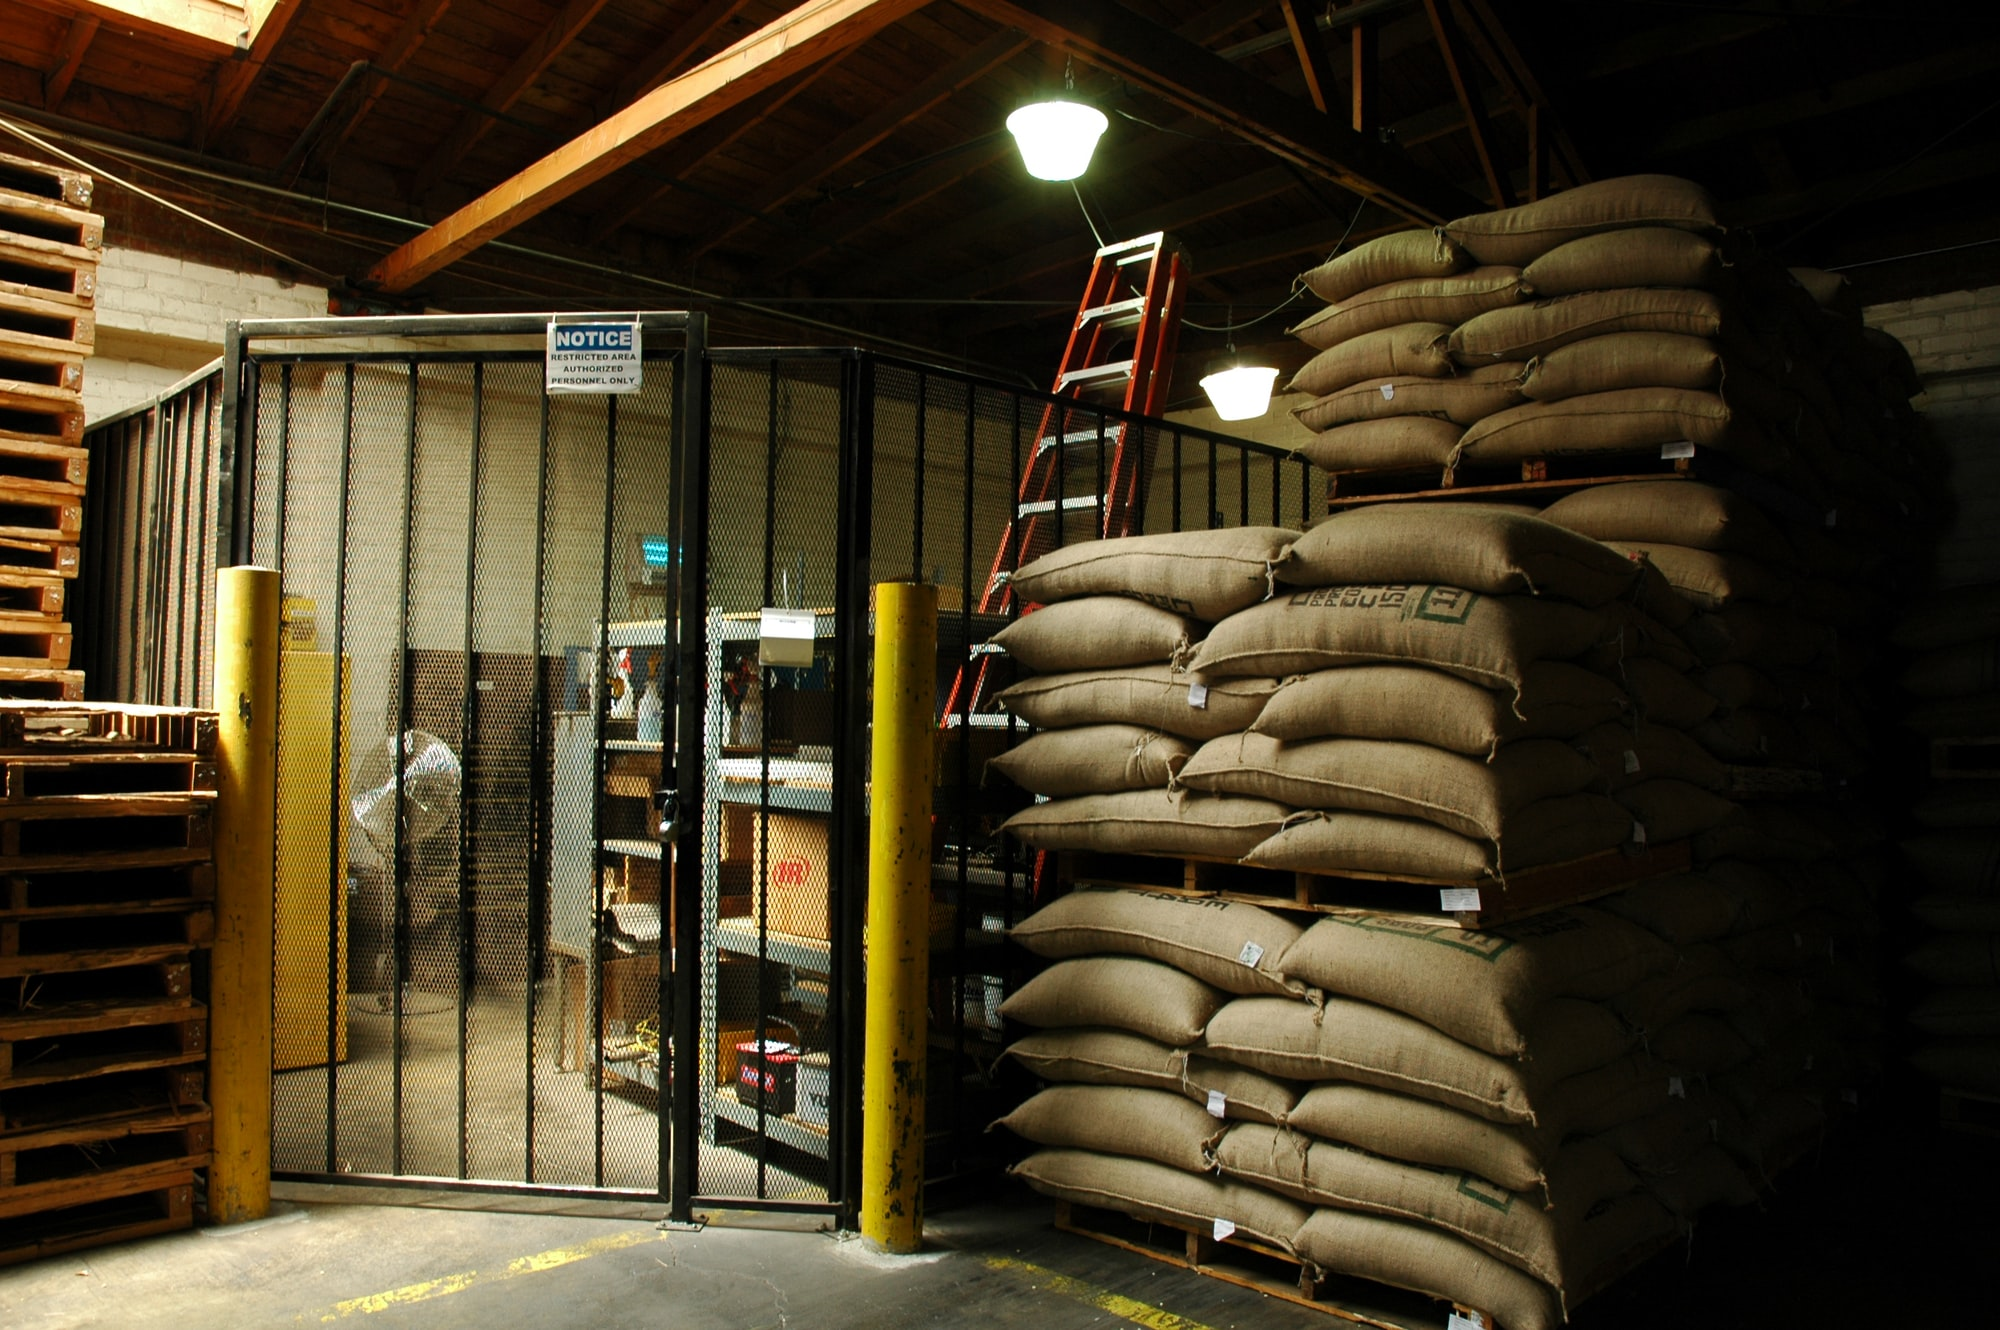 Coffee processor and manufacturing storage of coffee beans arriving from tropical locations around the world, burlap bags, wood crates, secure areas, ladders, yellow bollards, Los Angeles, California, USA